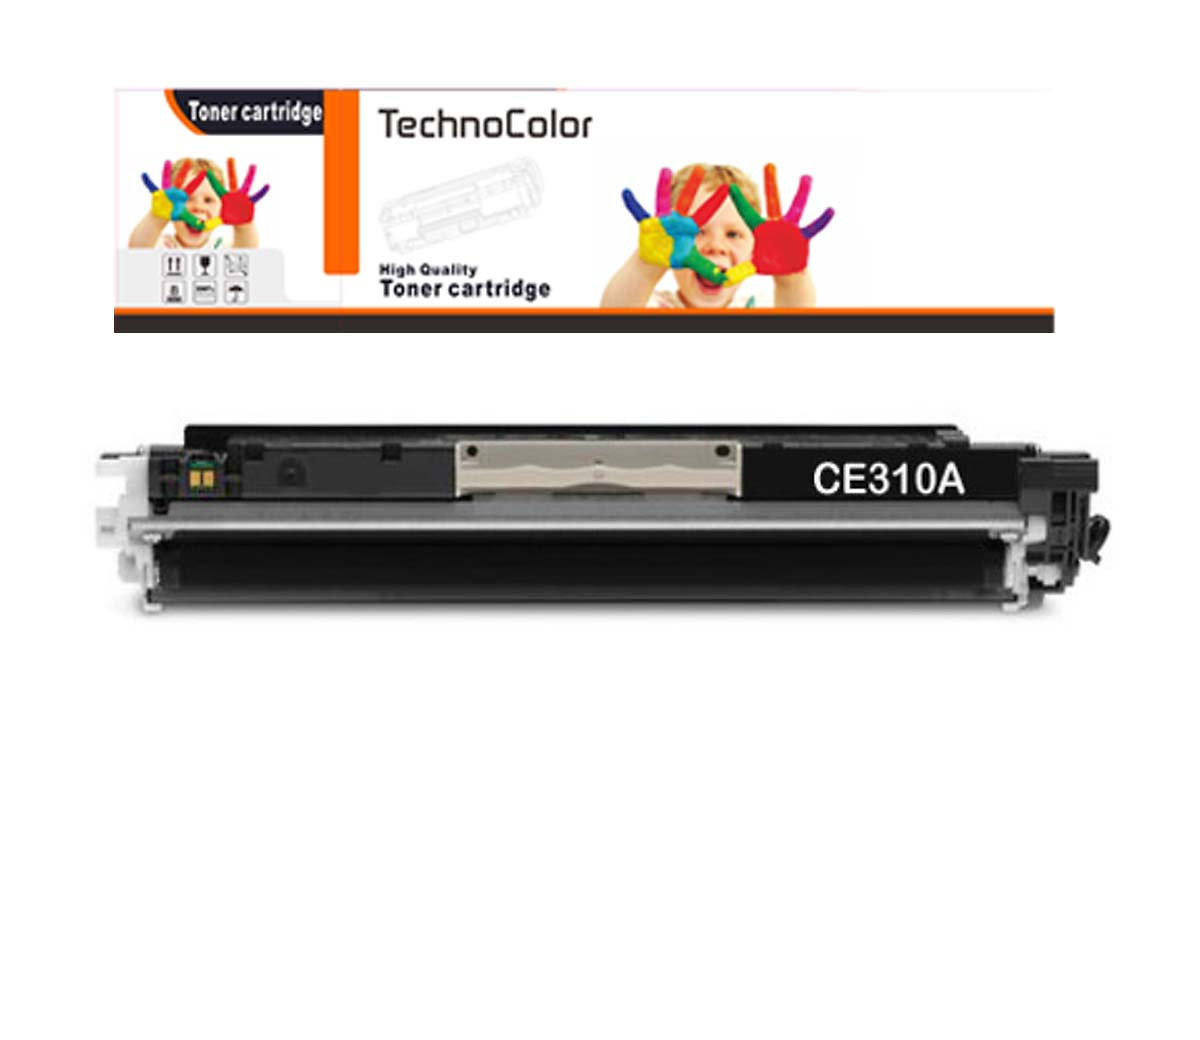 Computer Sales Services Lebanon Beirut Ayoub Computers Ink Tinta Hp 45 Black Original Compatible Toner For 126a Ce310a Laserjet Cartridge Technocolor